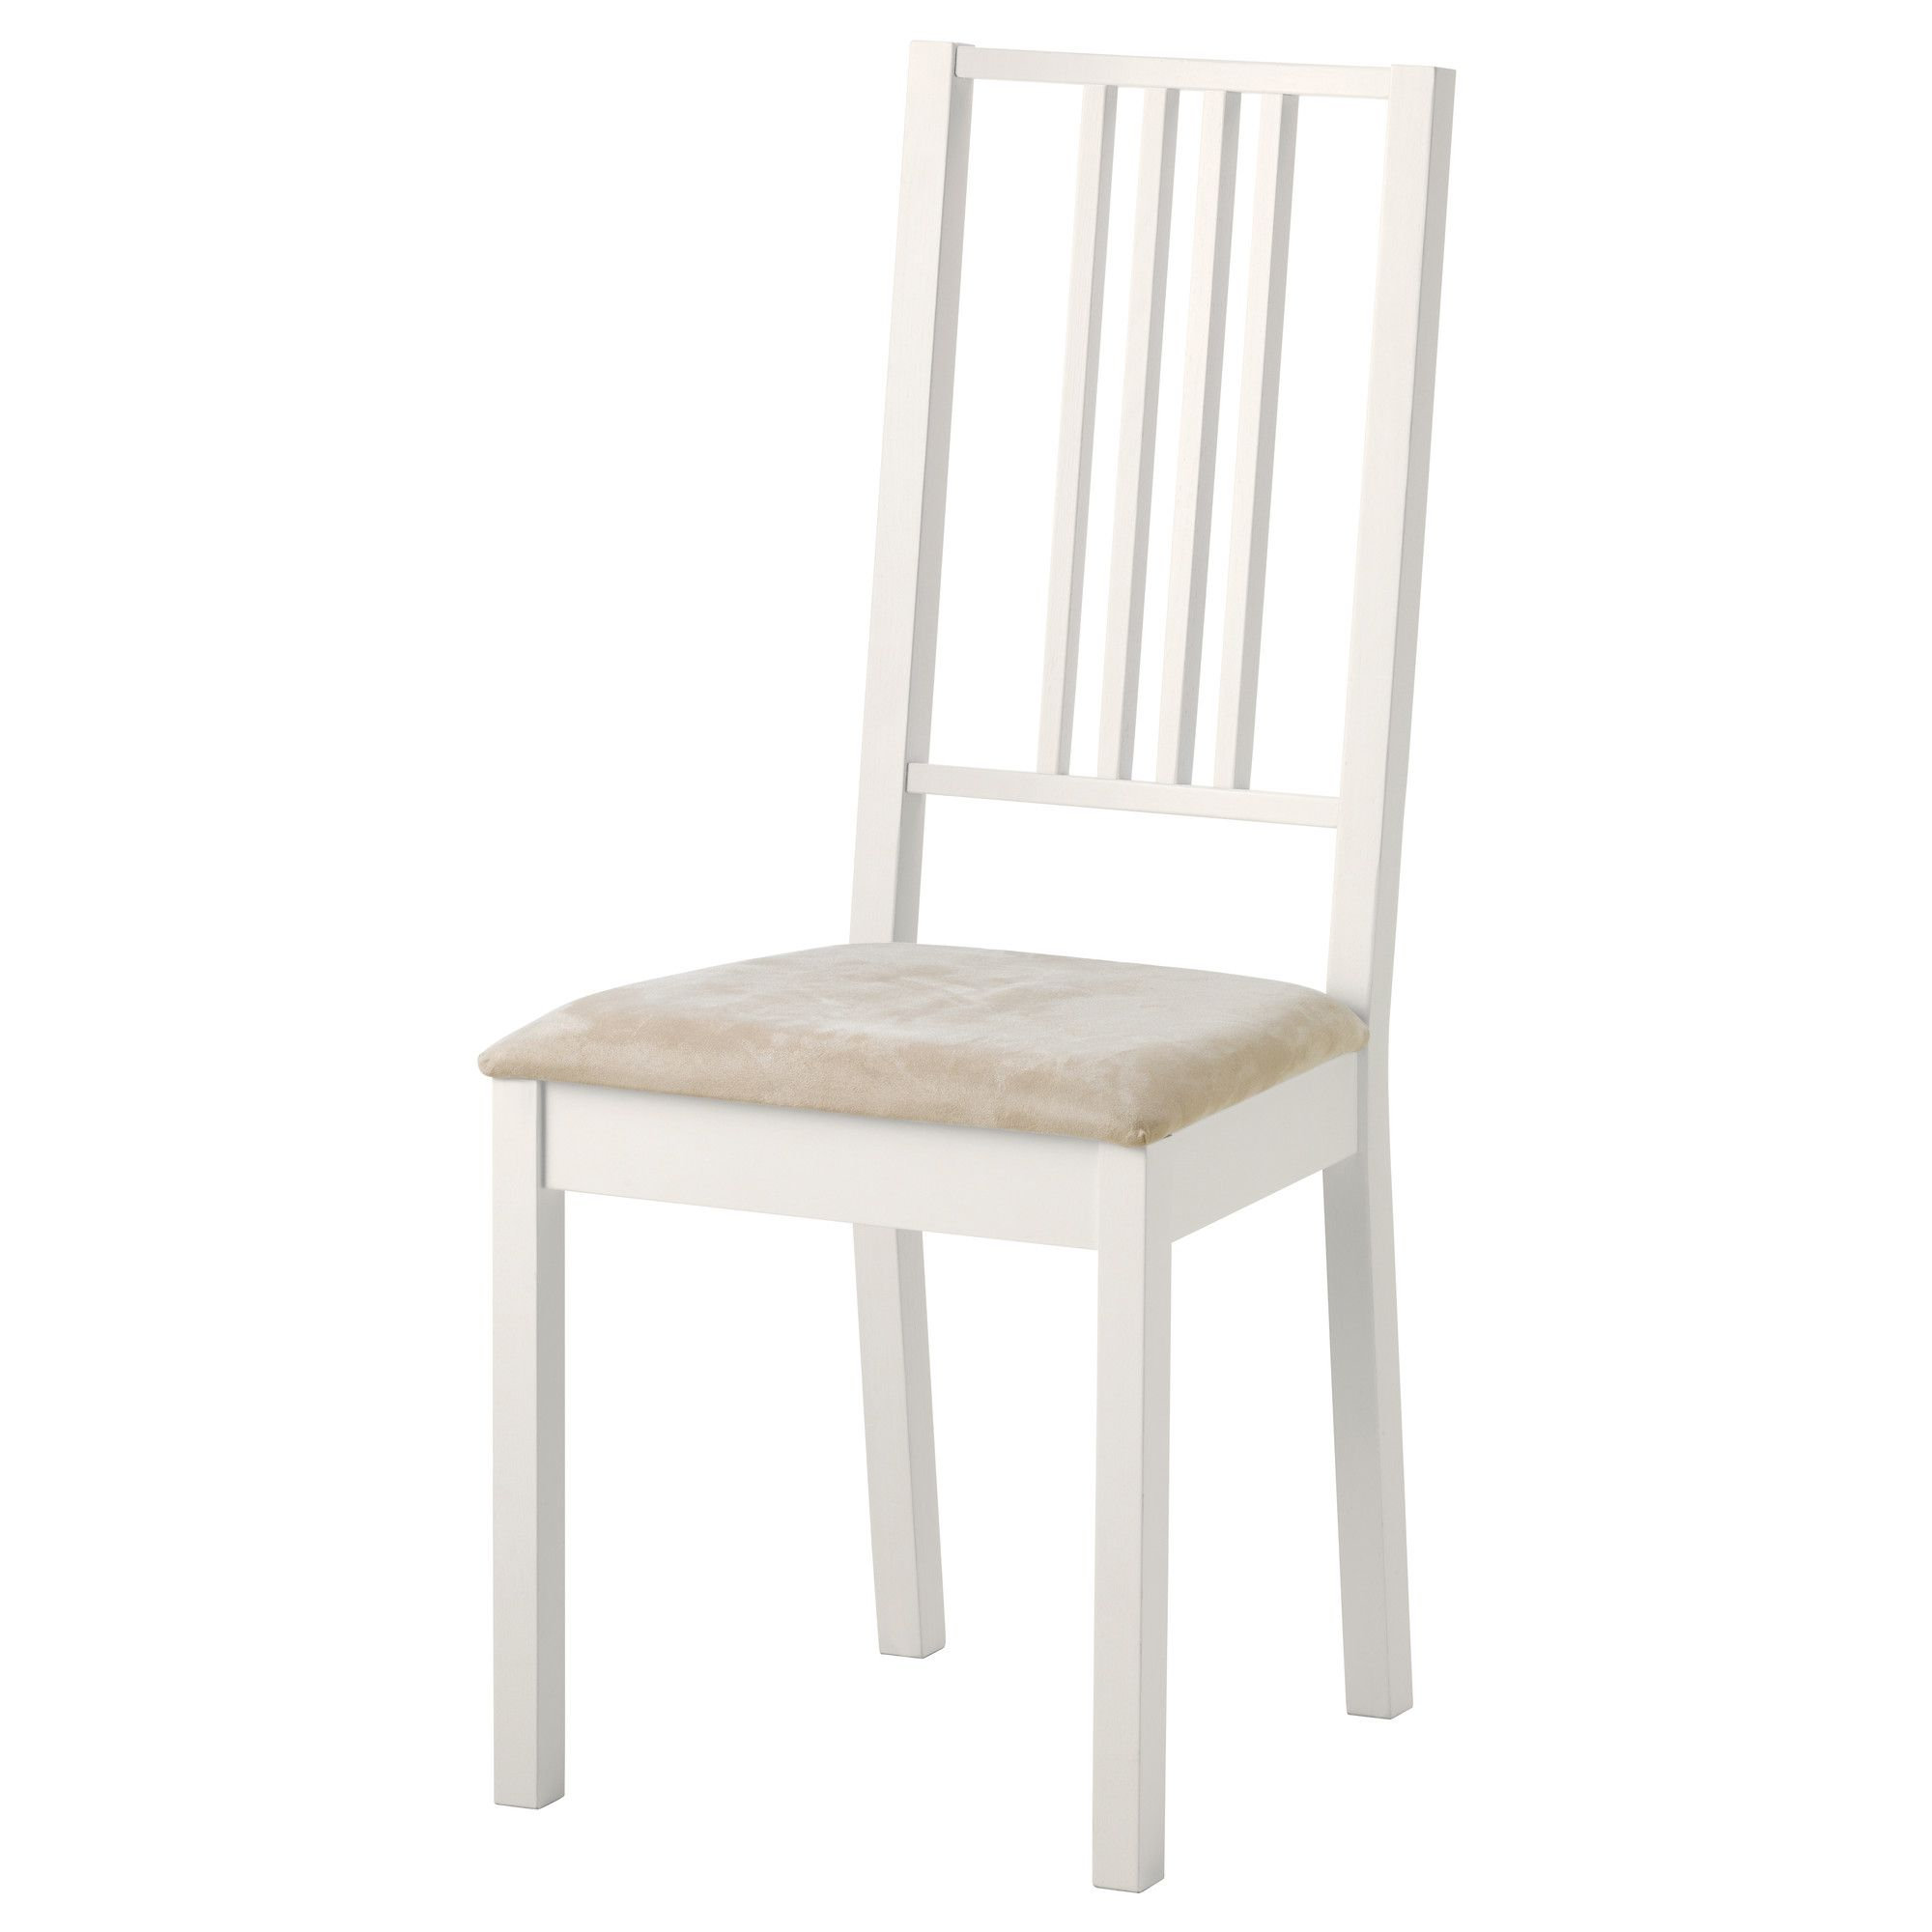 Ikea Les Chaises BÖrje Chair White Kungsvik Sand Ikea Kitchen Dining Room